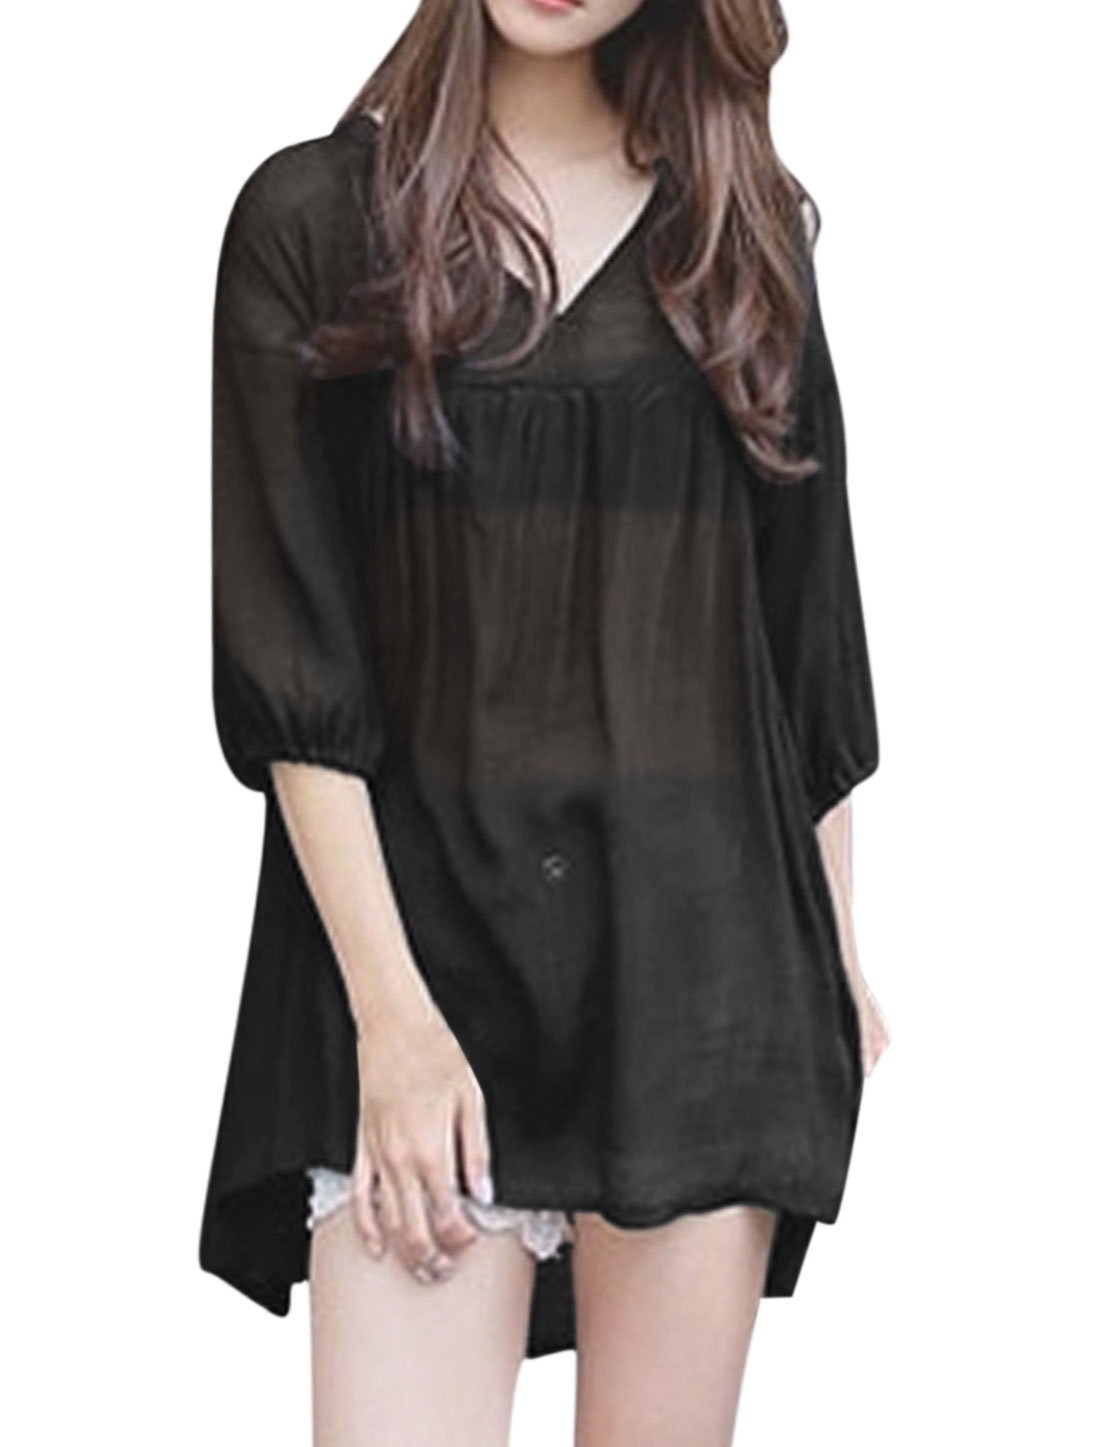 Woman V Neck 3/4 Sleeves High Low Hem Loose Fit Longline Top Black XS